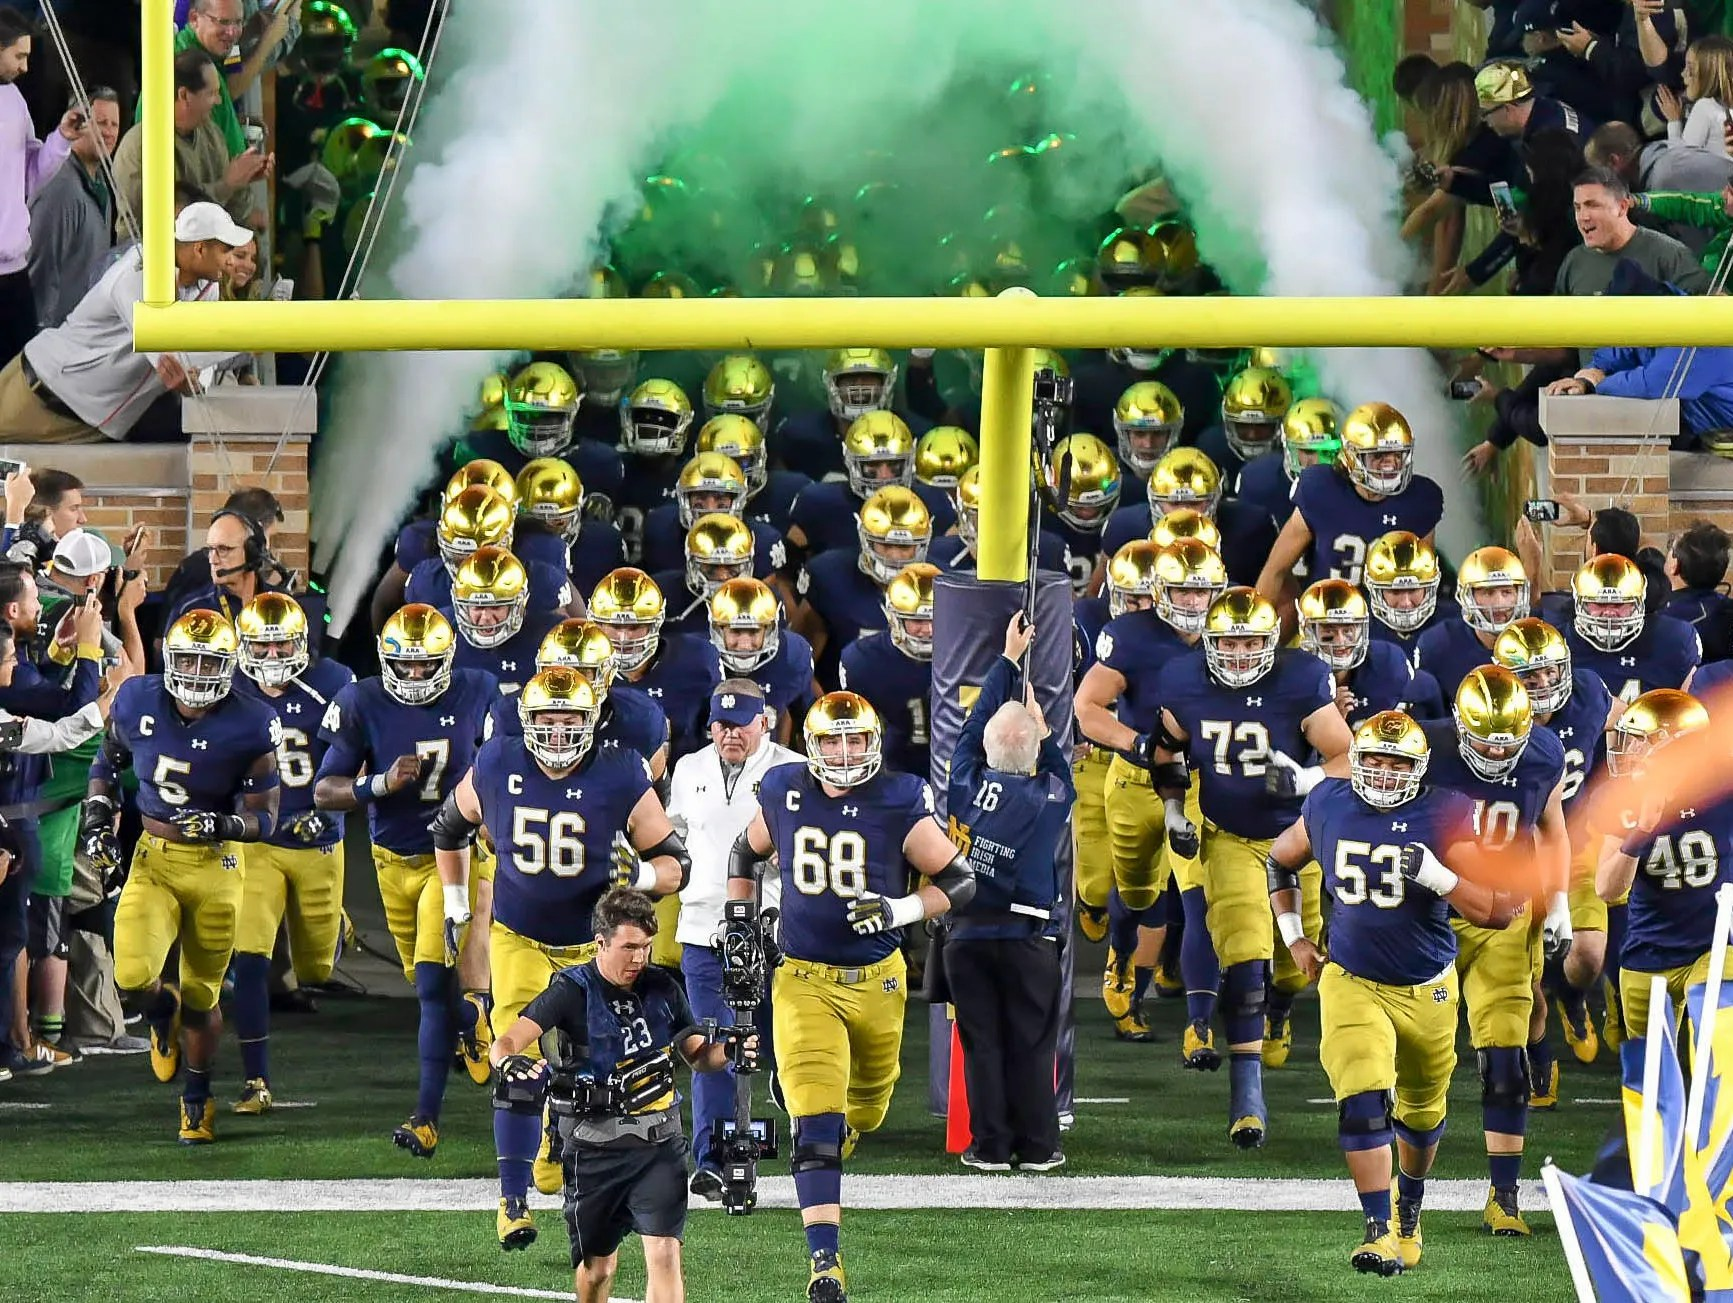 Notre Dame Scheduled For Three Home Night Games In 2018